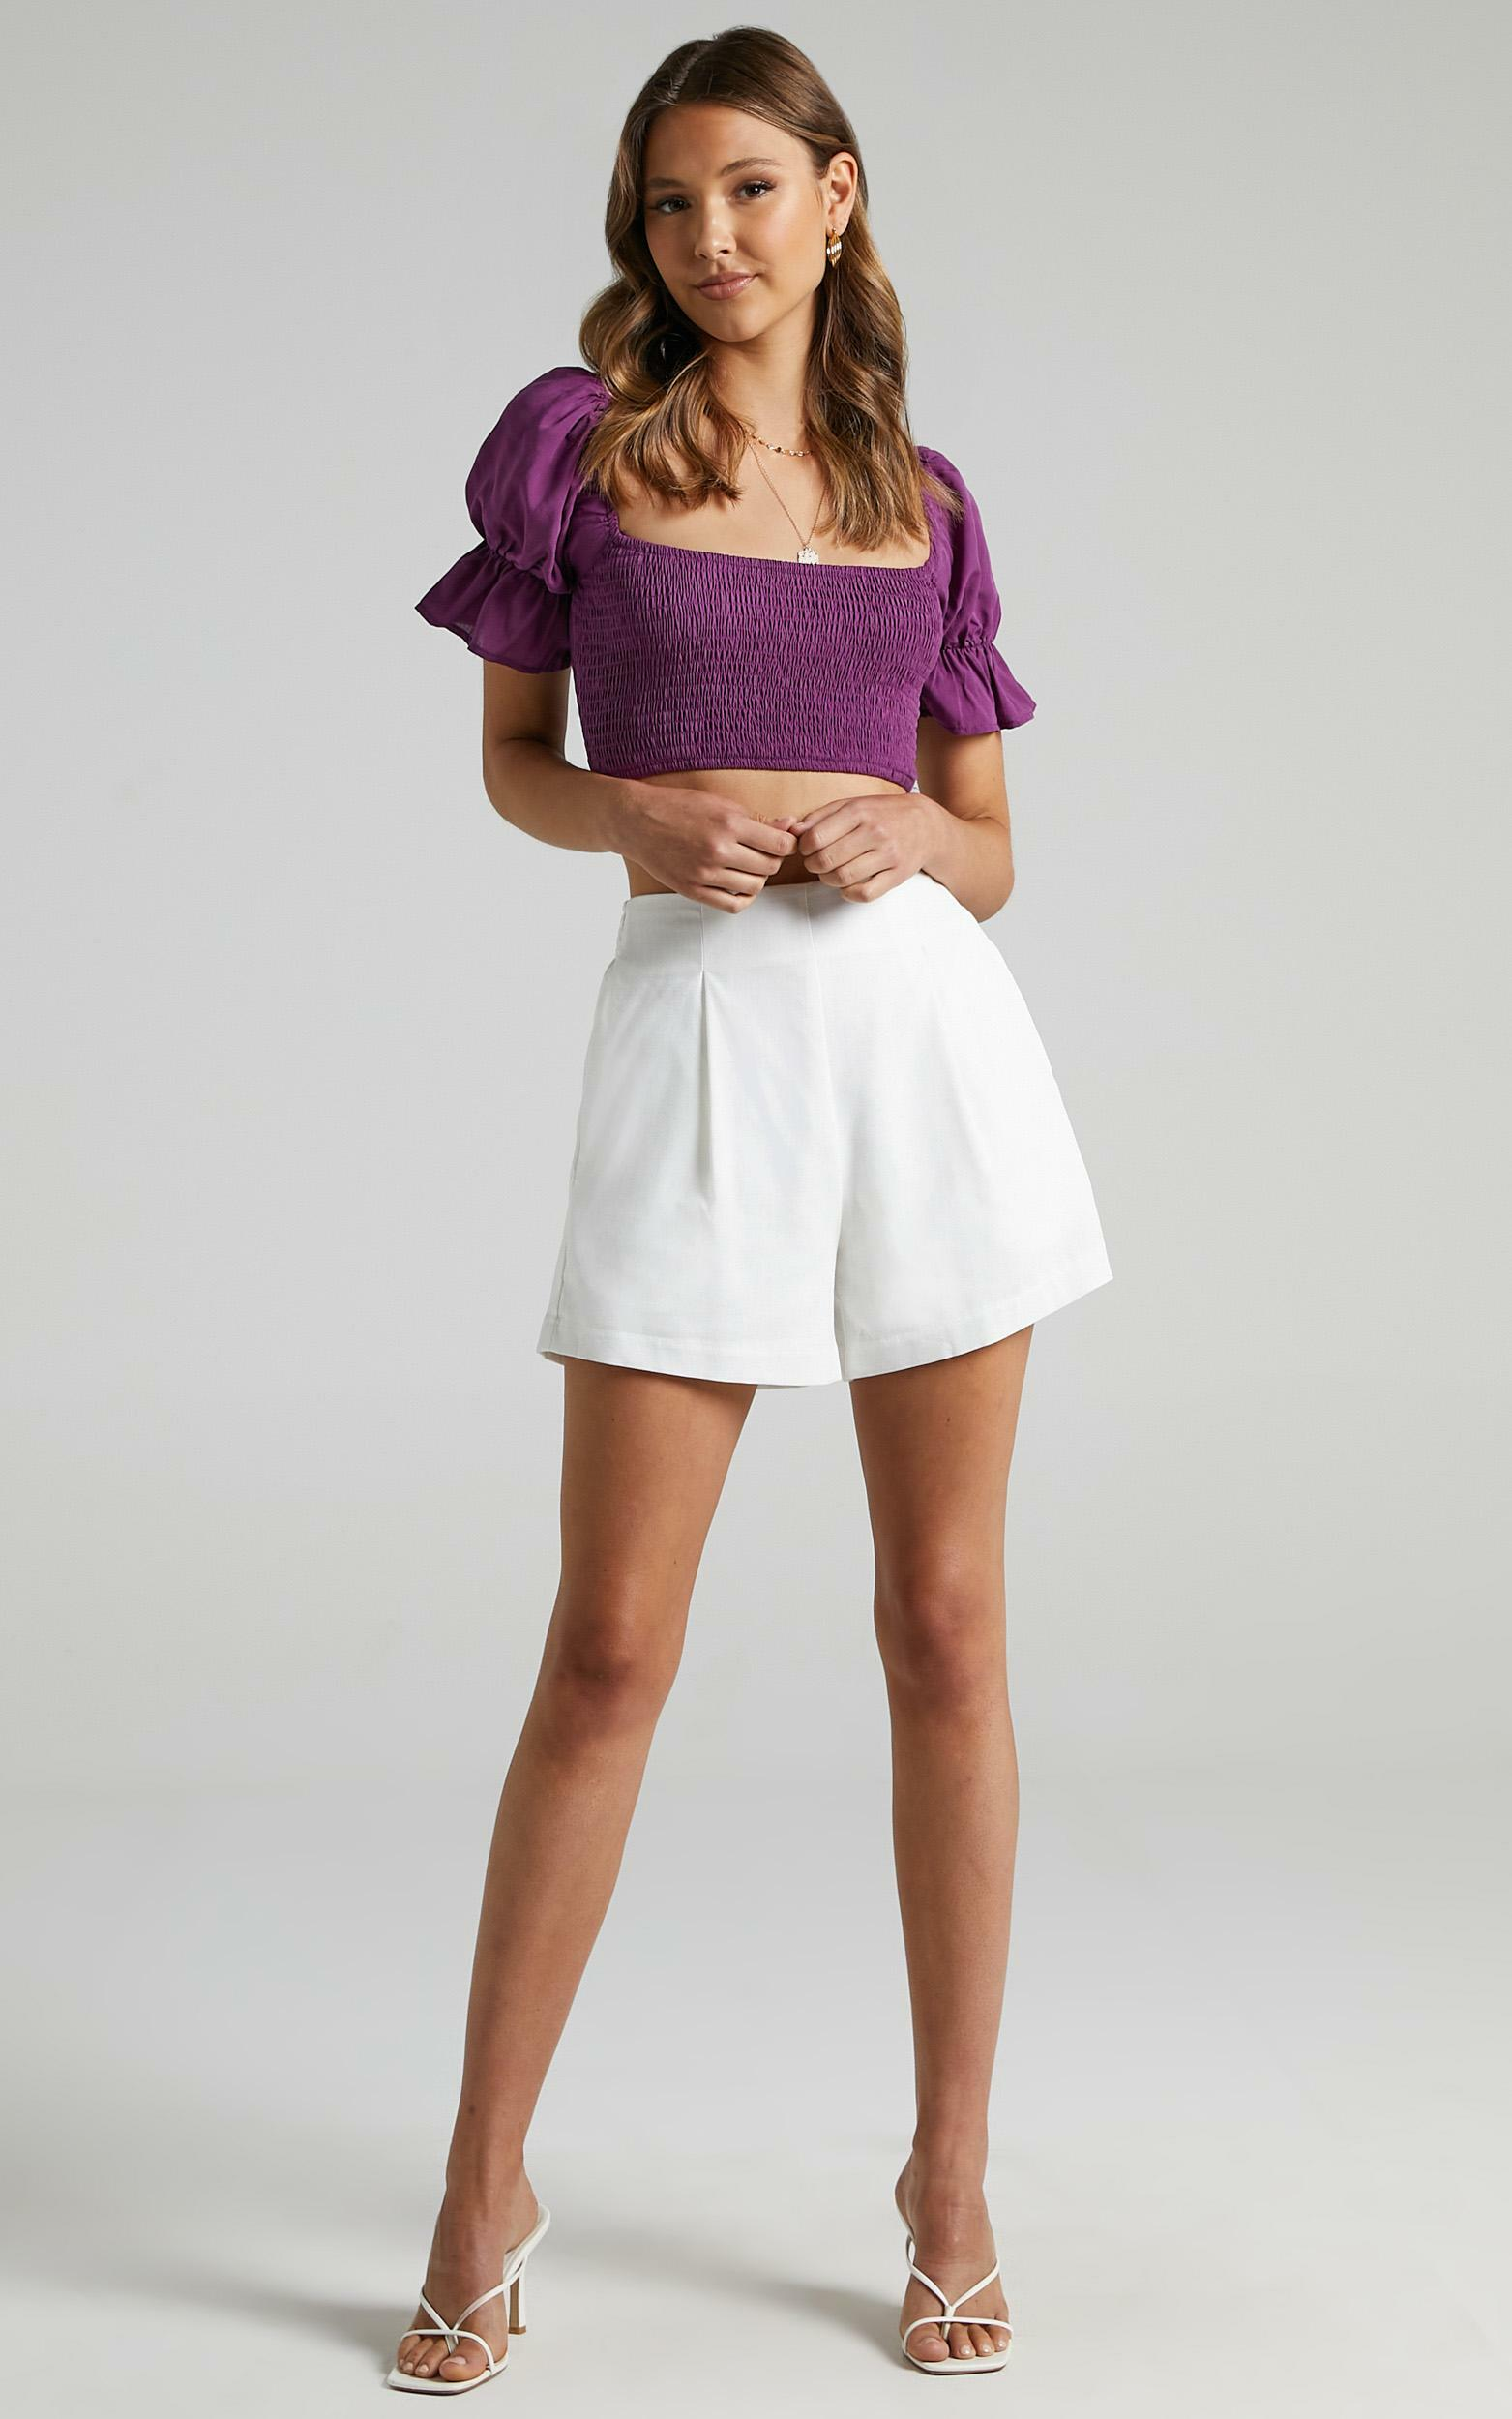 Audette Top in Dark Orchid - 6 (XS), Purple, hi-res image number null